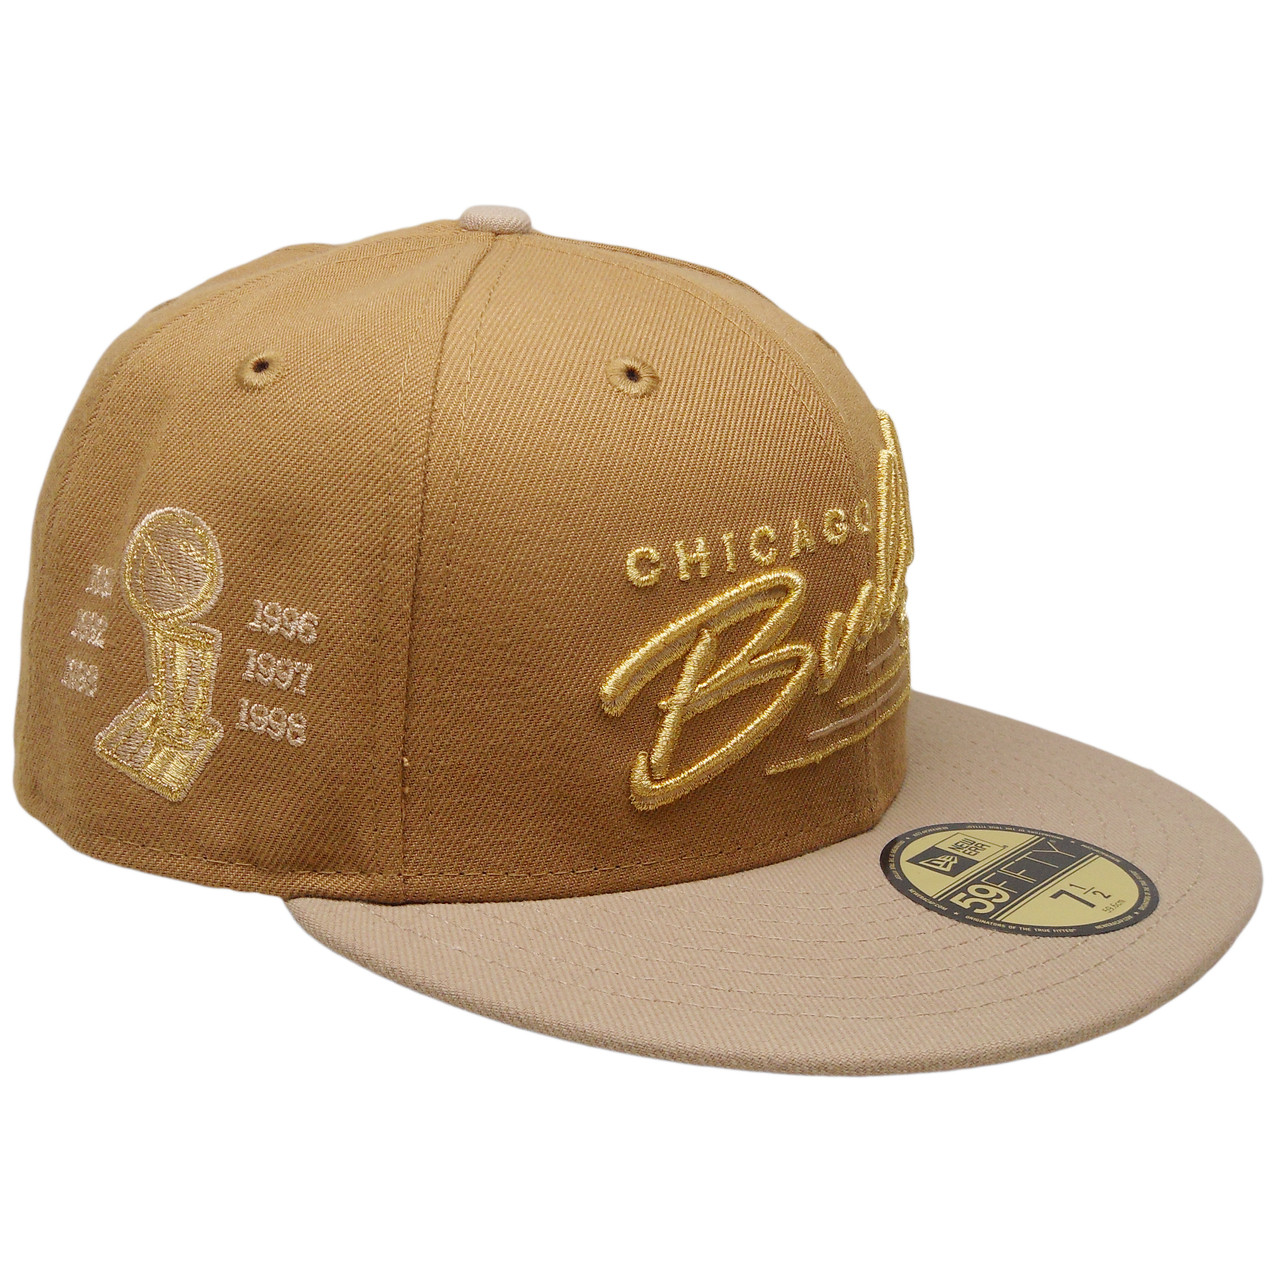 5a55744feee Chicago Bulls New Era Custom 59Fifty Fitted Hat - Wheat